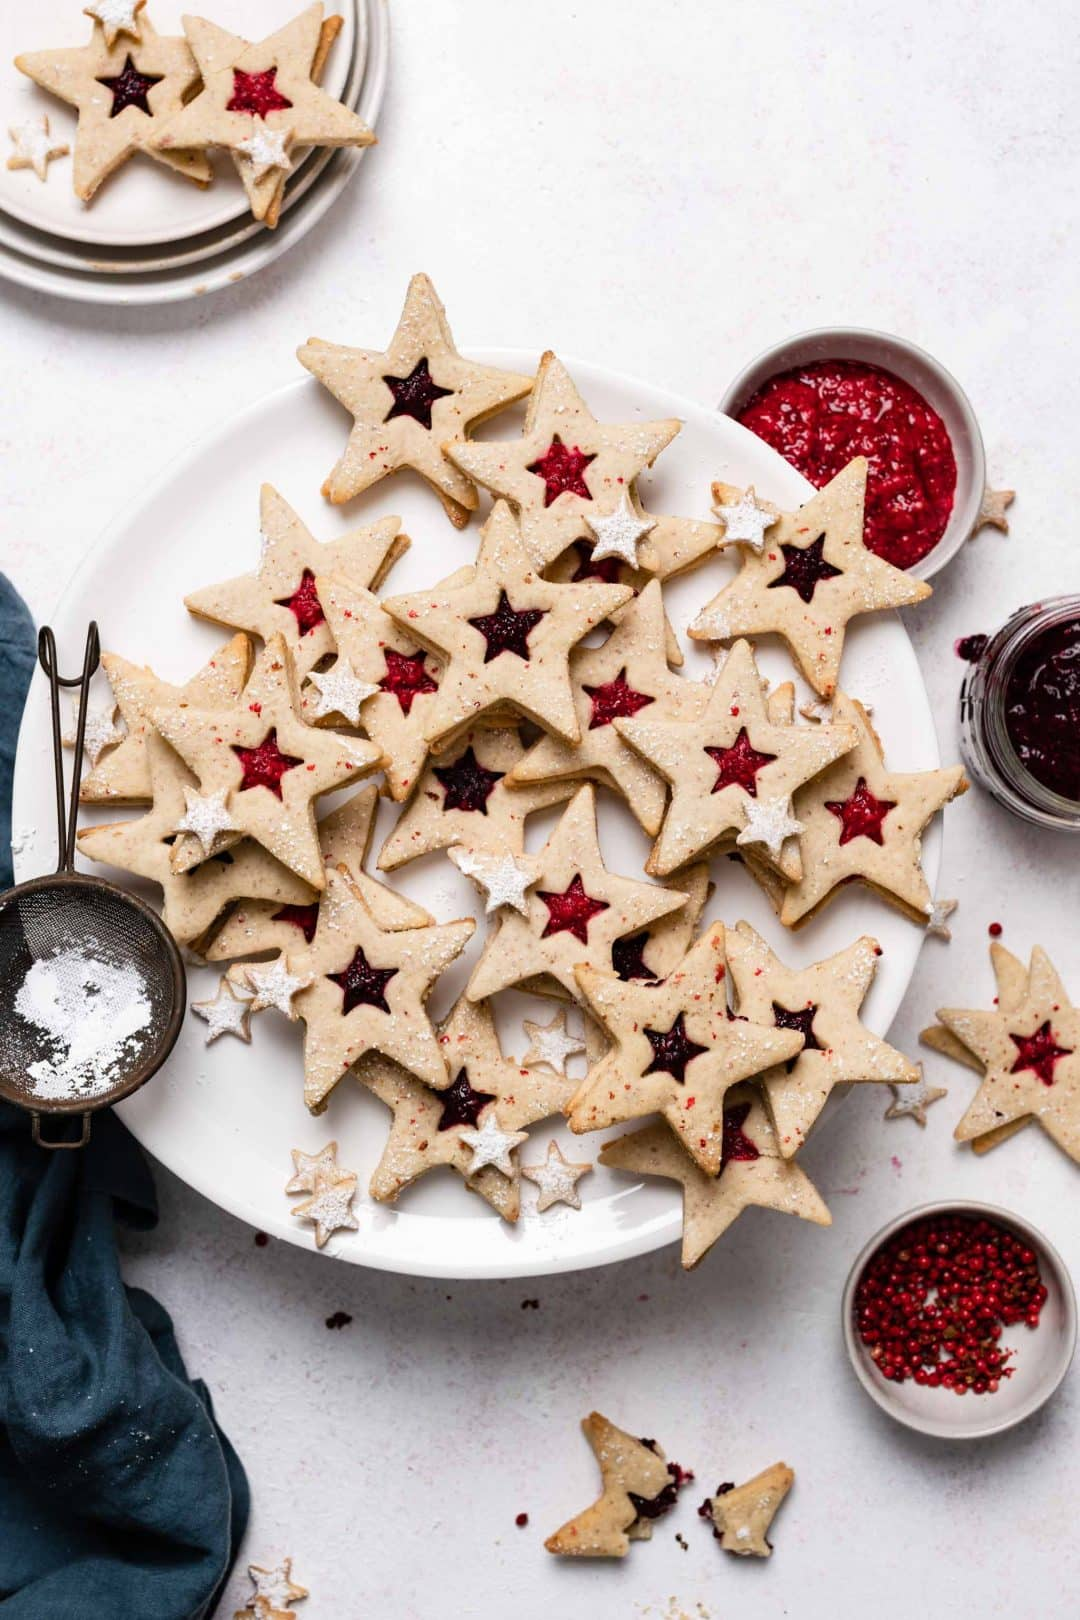 Star Cookie Recipe with fruit preserves and pink peppercorns